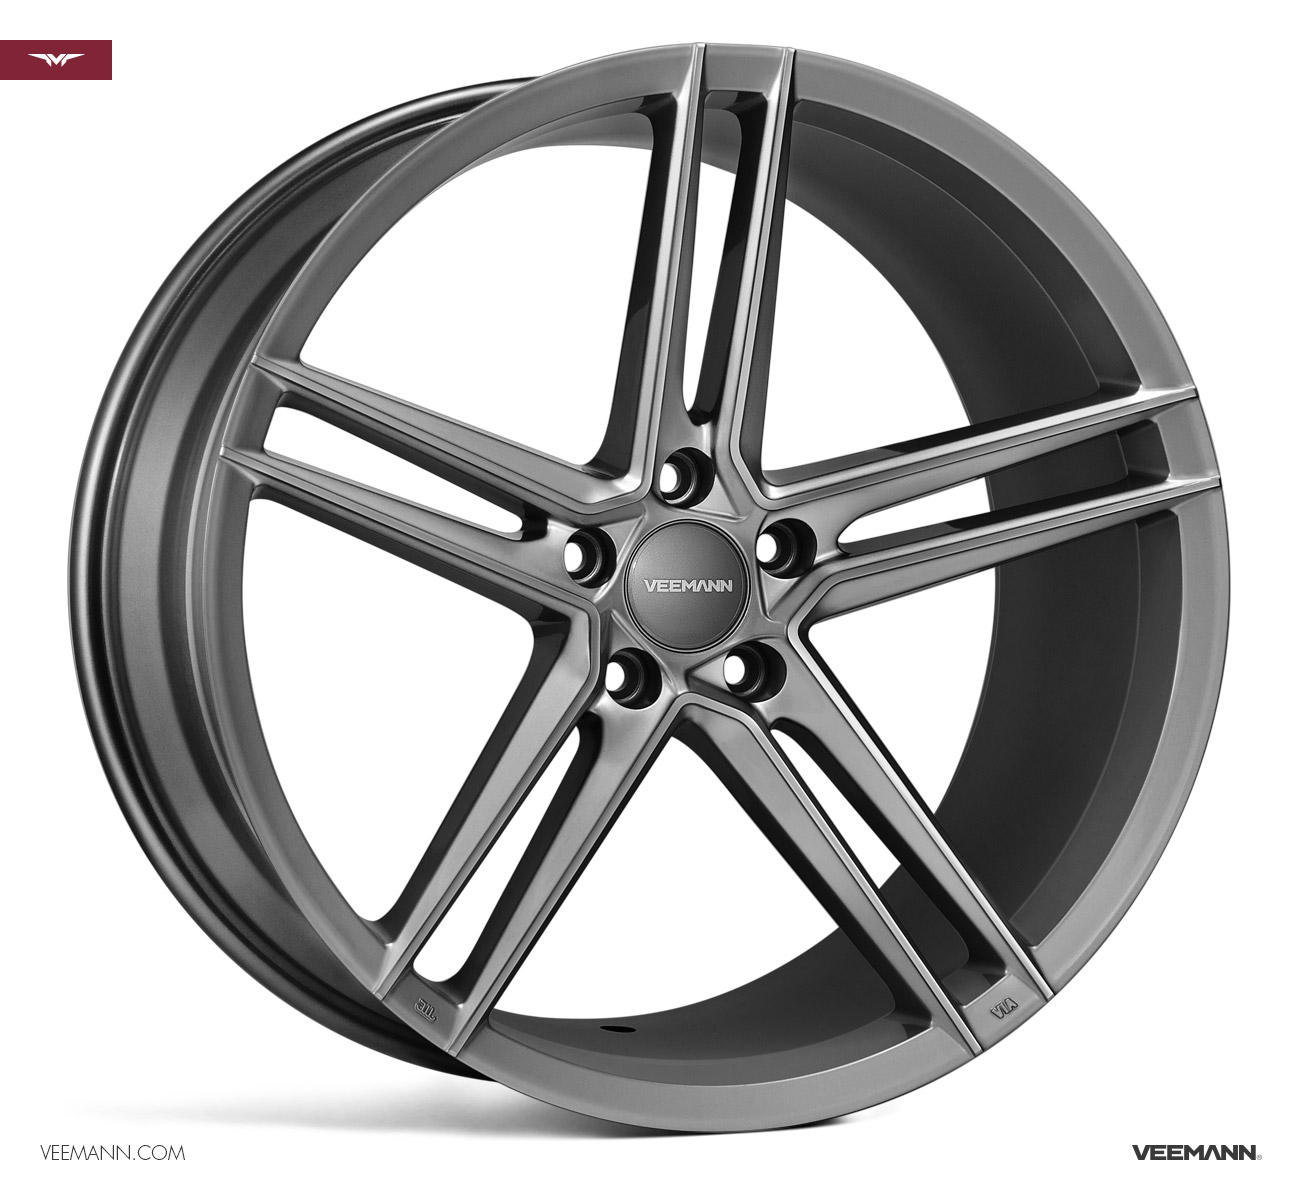 "NEW 19"" VEEMANN V-FS33 ALLOYS IN GLOSS GRAPHITE WITH WIDER 9.5"" REARS"